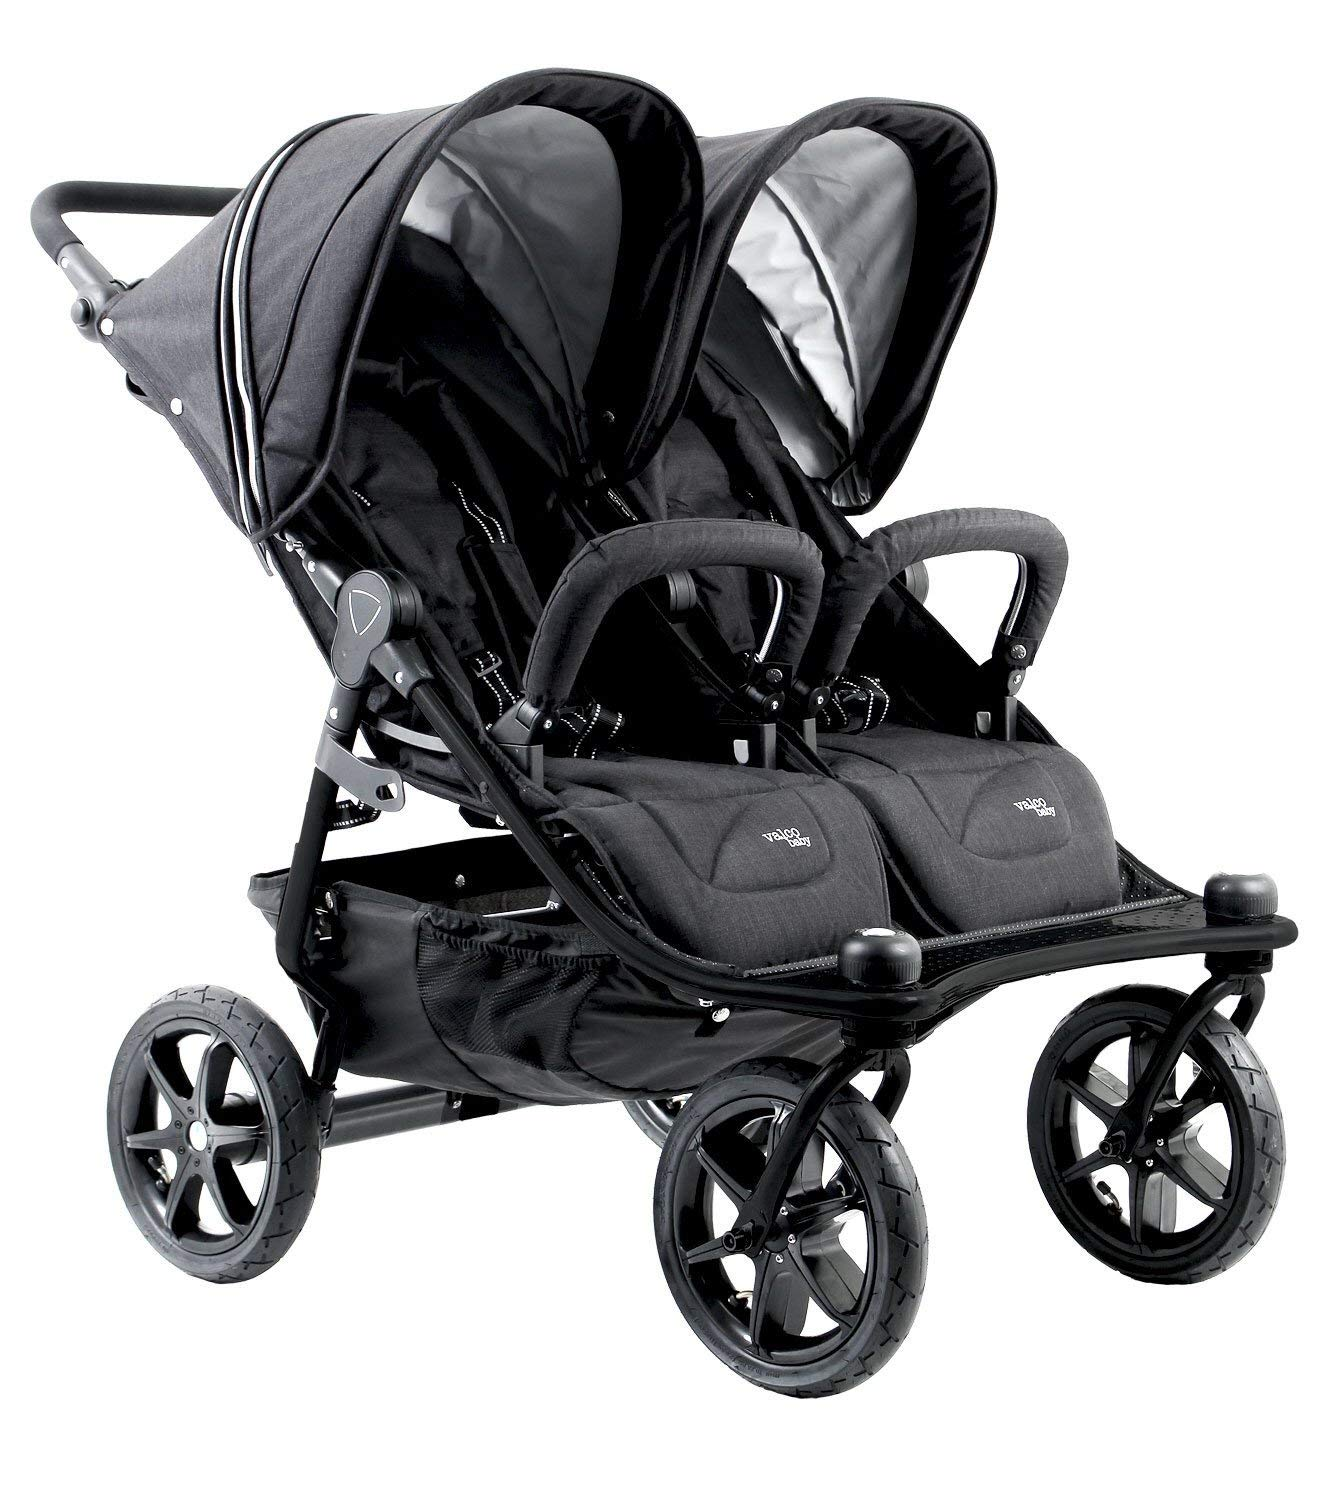 Valco Baby Tri Mode Duo X All Terrain Double Stroller (Black Lightening) by valco baby (Image #2)